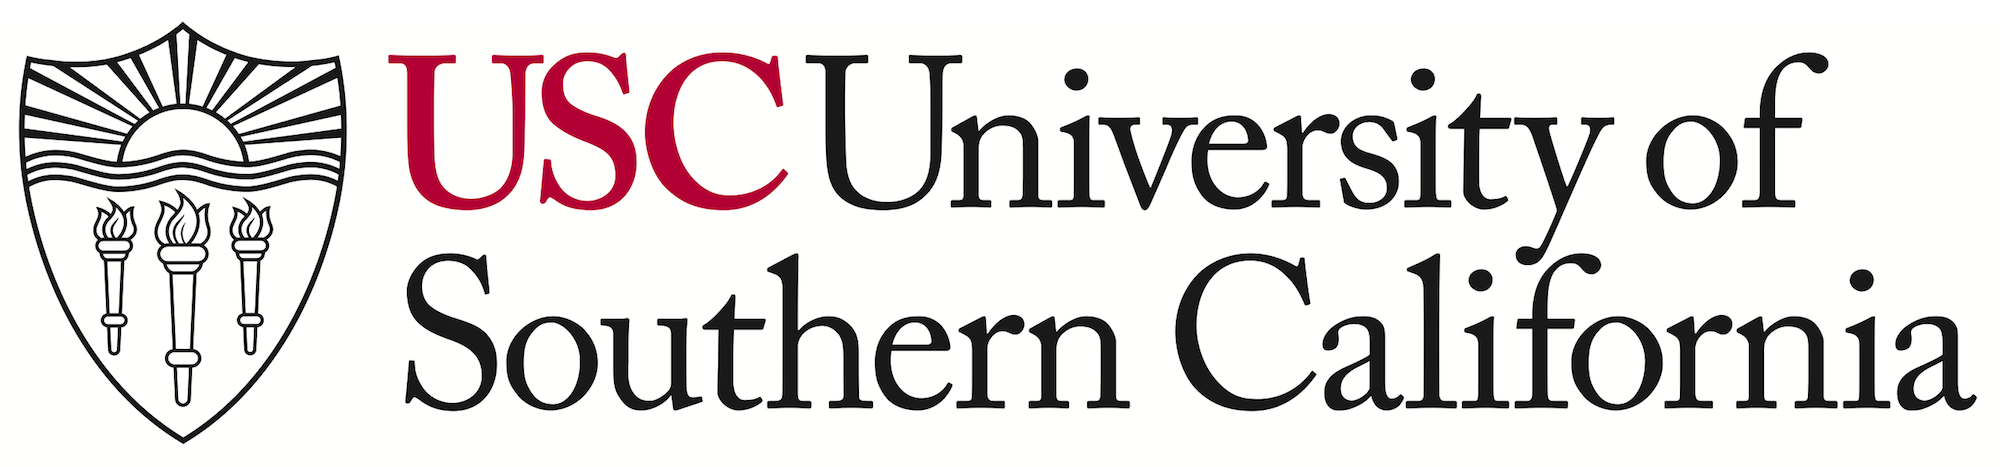 Usc PNG Free - 80260